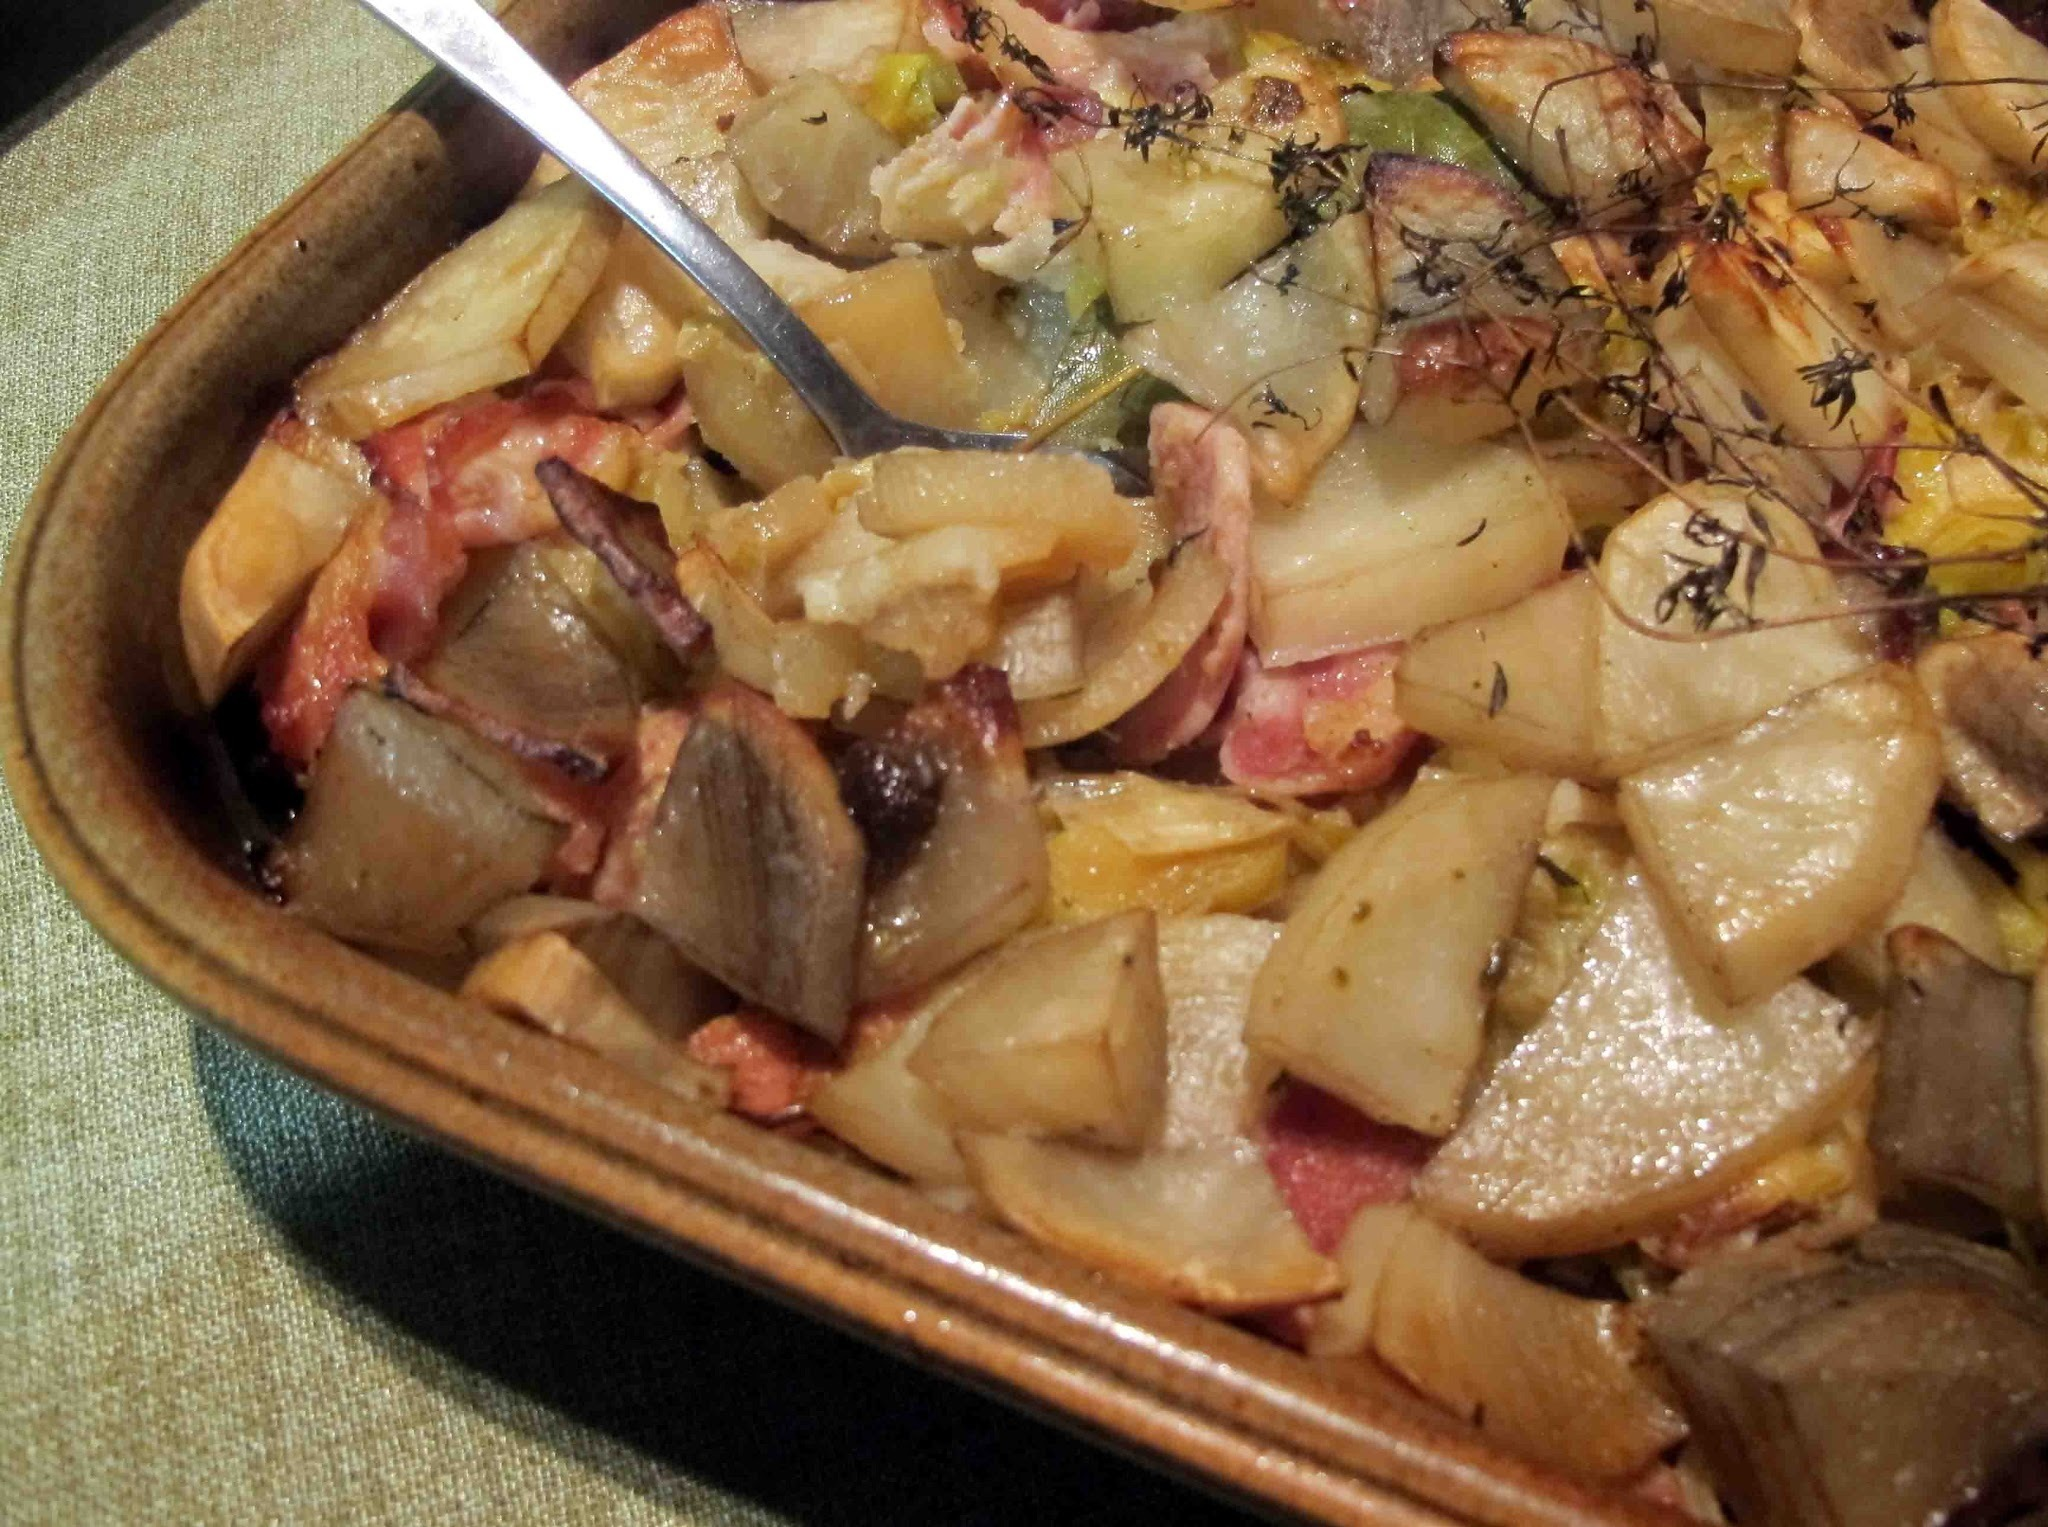 Potatoes baked with leeks, bacon and fresh garden herbs.